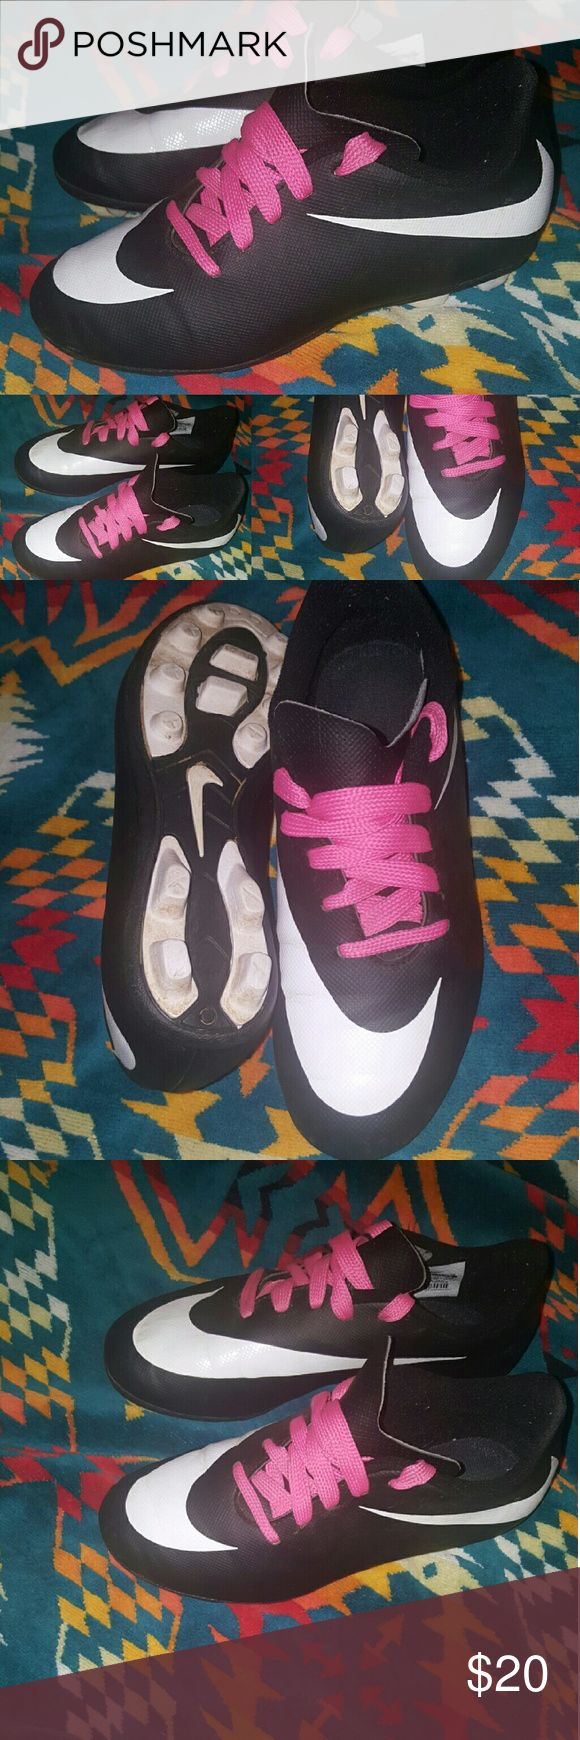 NIKE KIDS CLEATS SOCCER 2.5 Y YOUTH athletic NIKE NICE STYLE KIDS CLEATS HARDLY WORN 2.5 Y Nike Shoes Sneakers